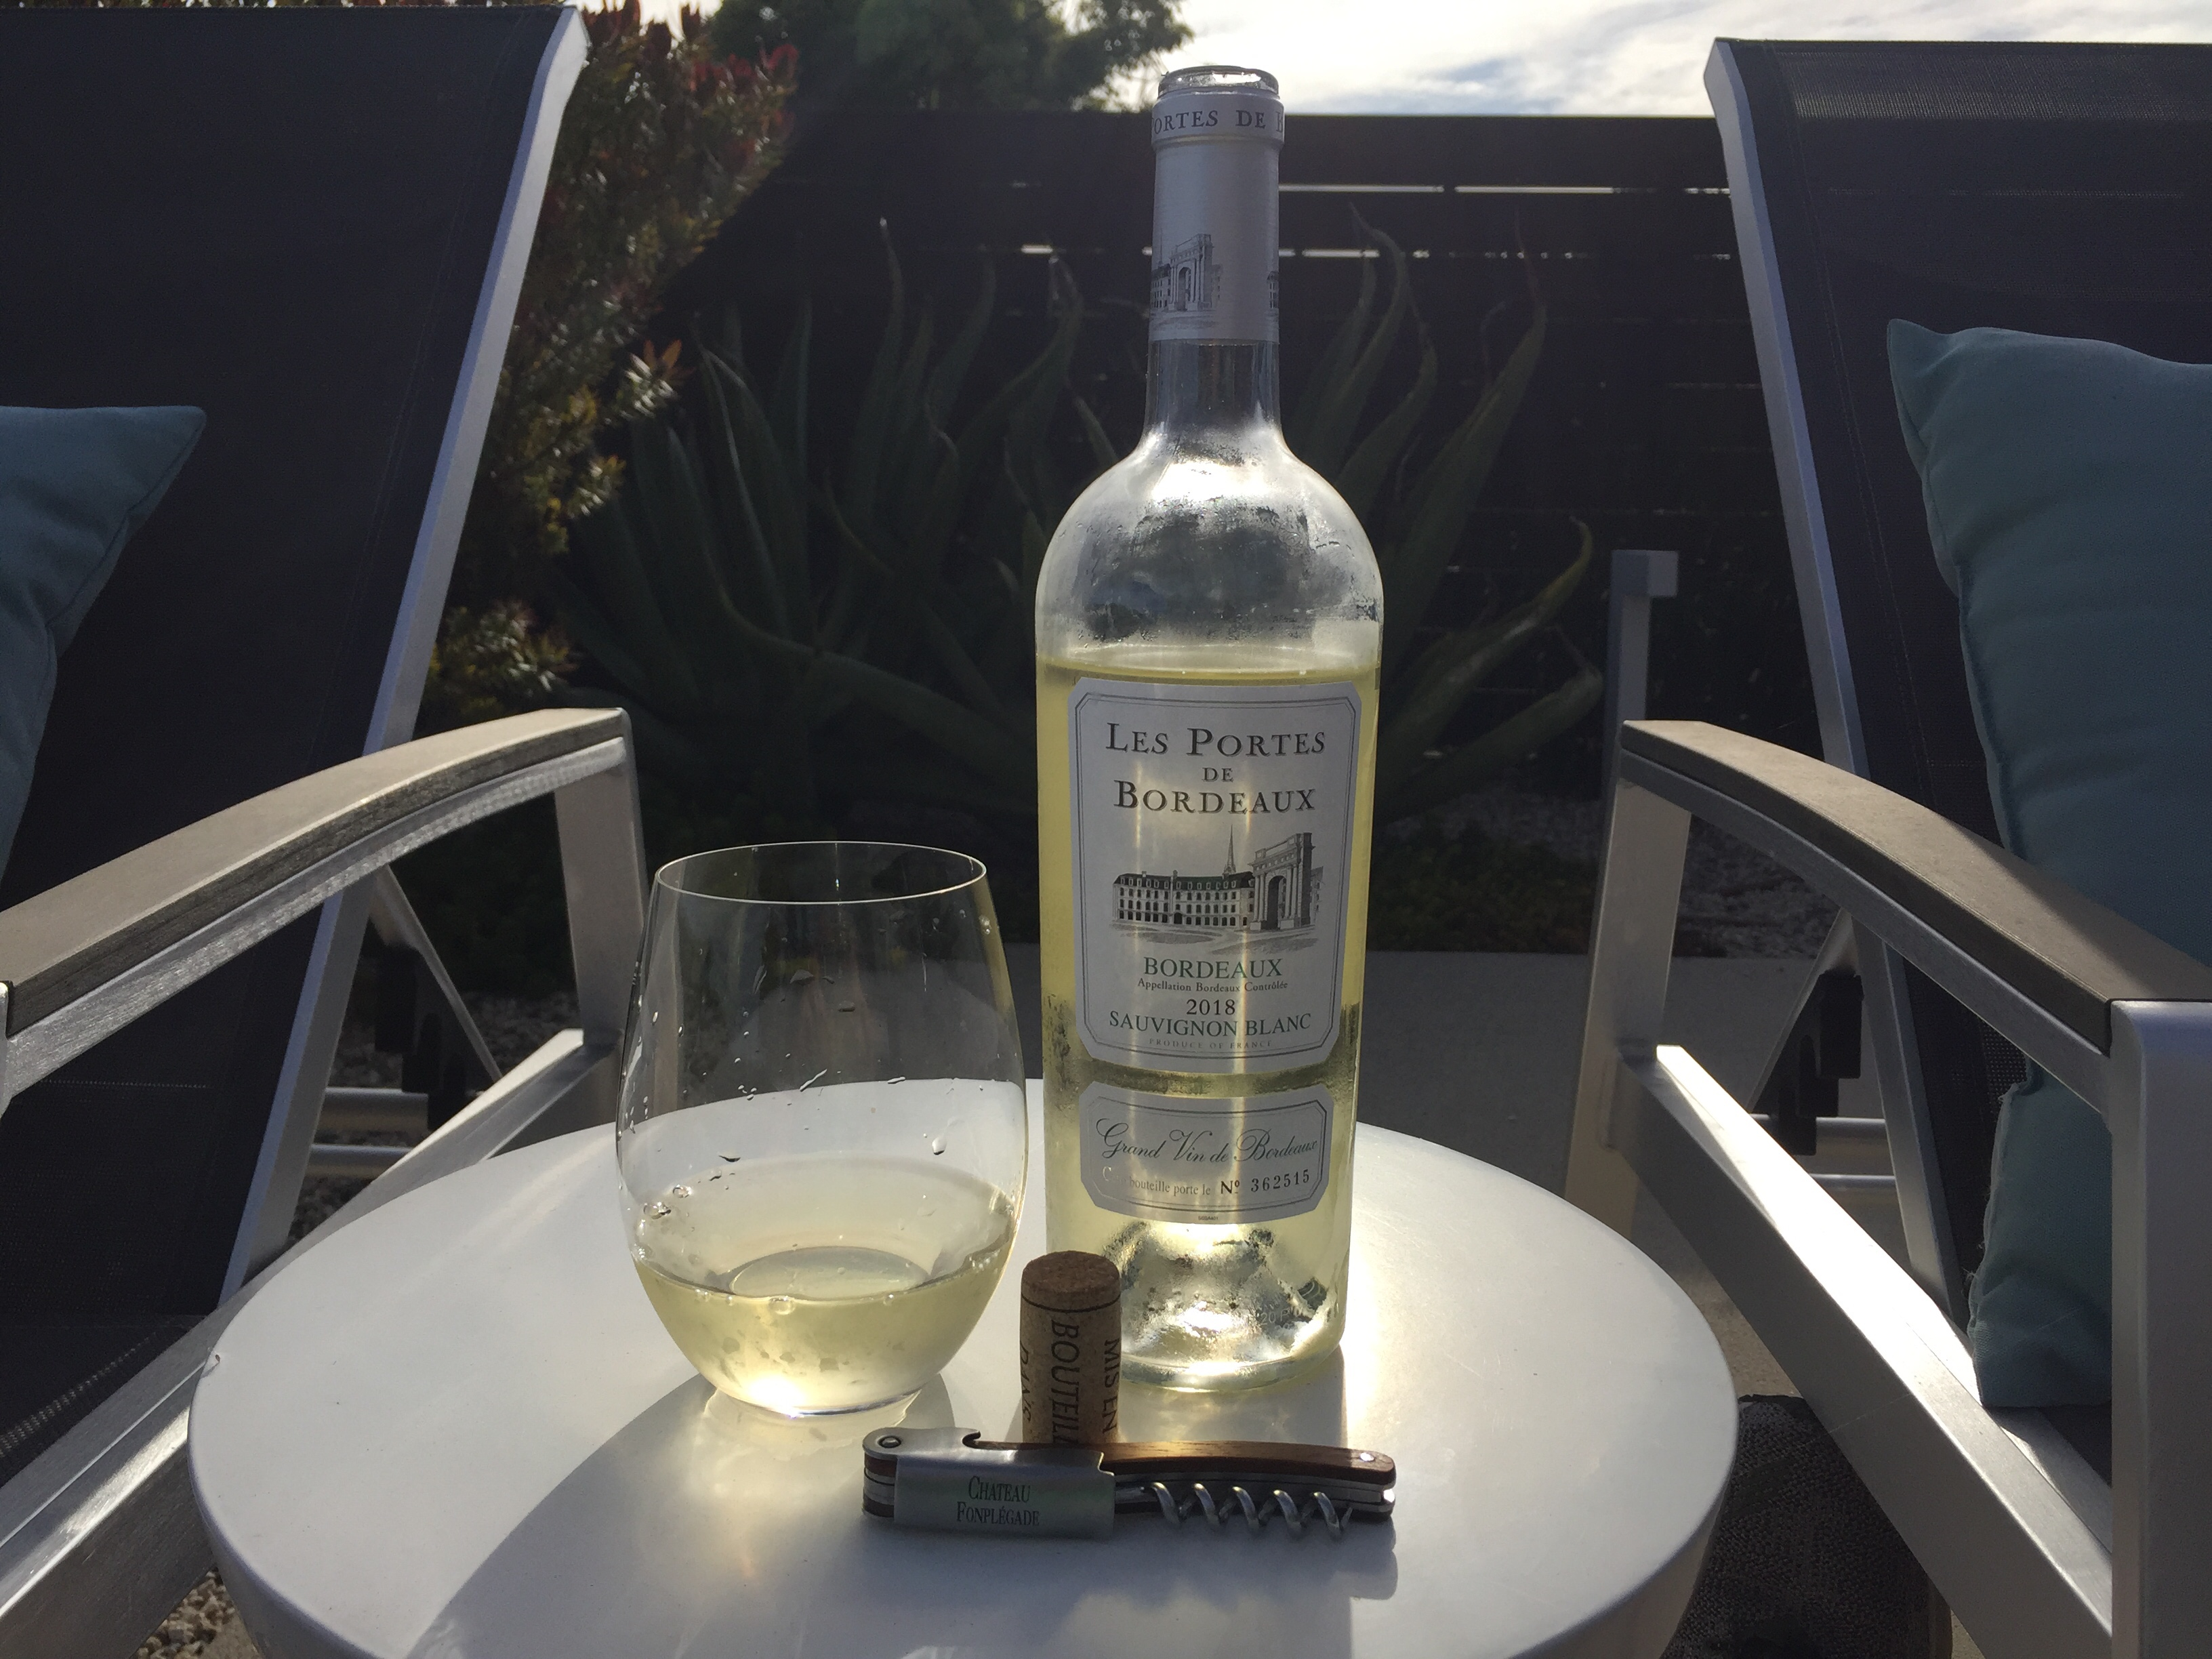 Bottle and glass of 2018 Les Portes De Bordeaux Sauvignon Blanc from Trader Joe's